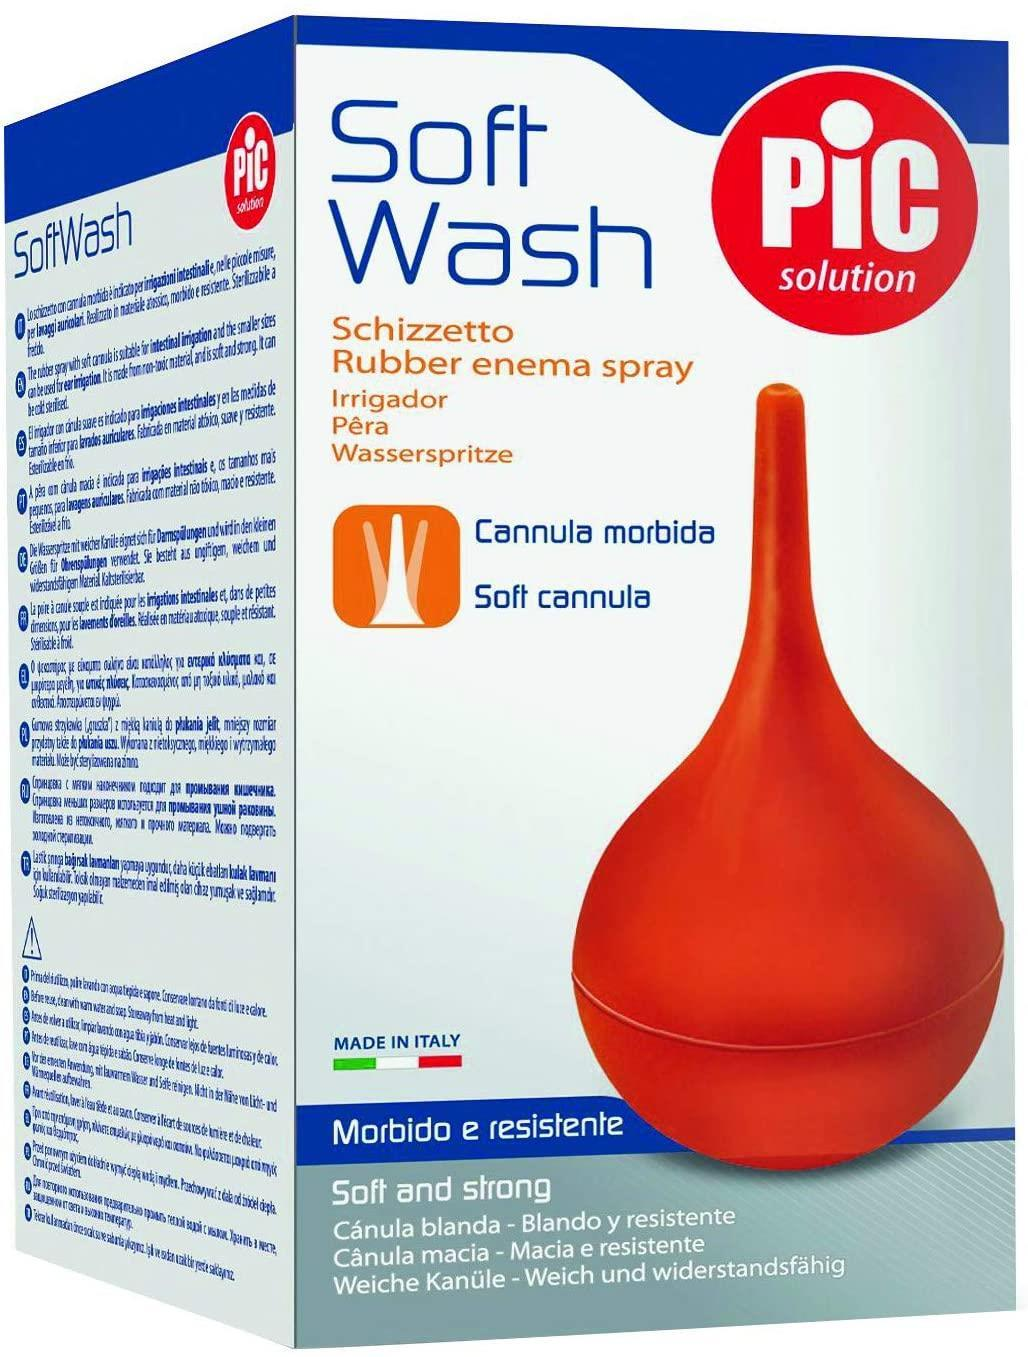 Pic Solution Soft Wash - Rubber enema spray with soft cannula - 260ml